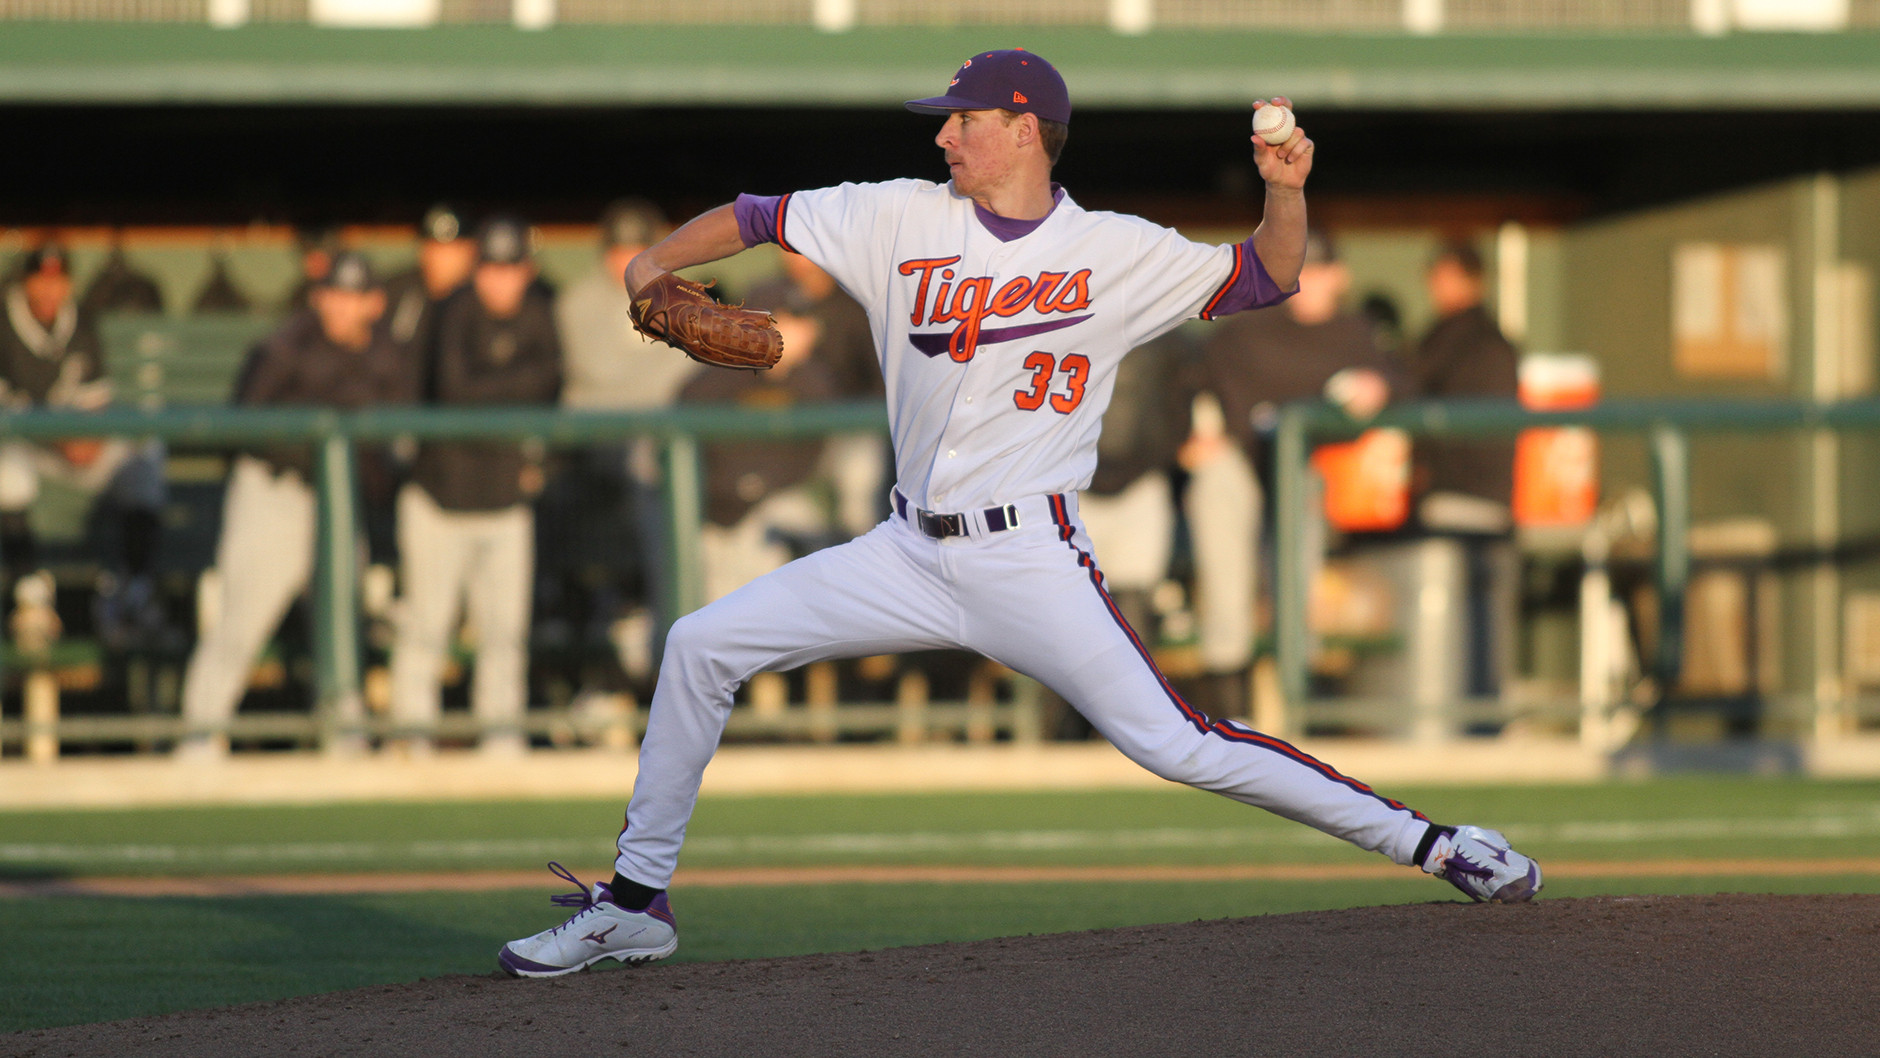 Erwin Pitches No. 14 Tigers Over Mountaineers, 2-1